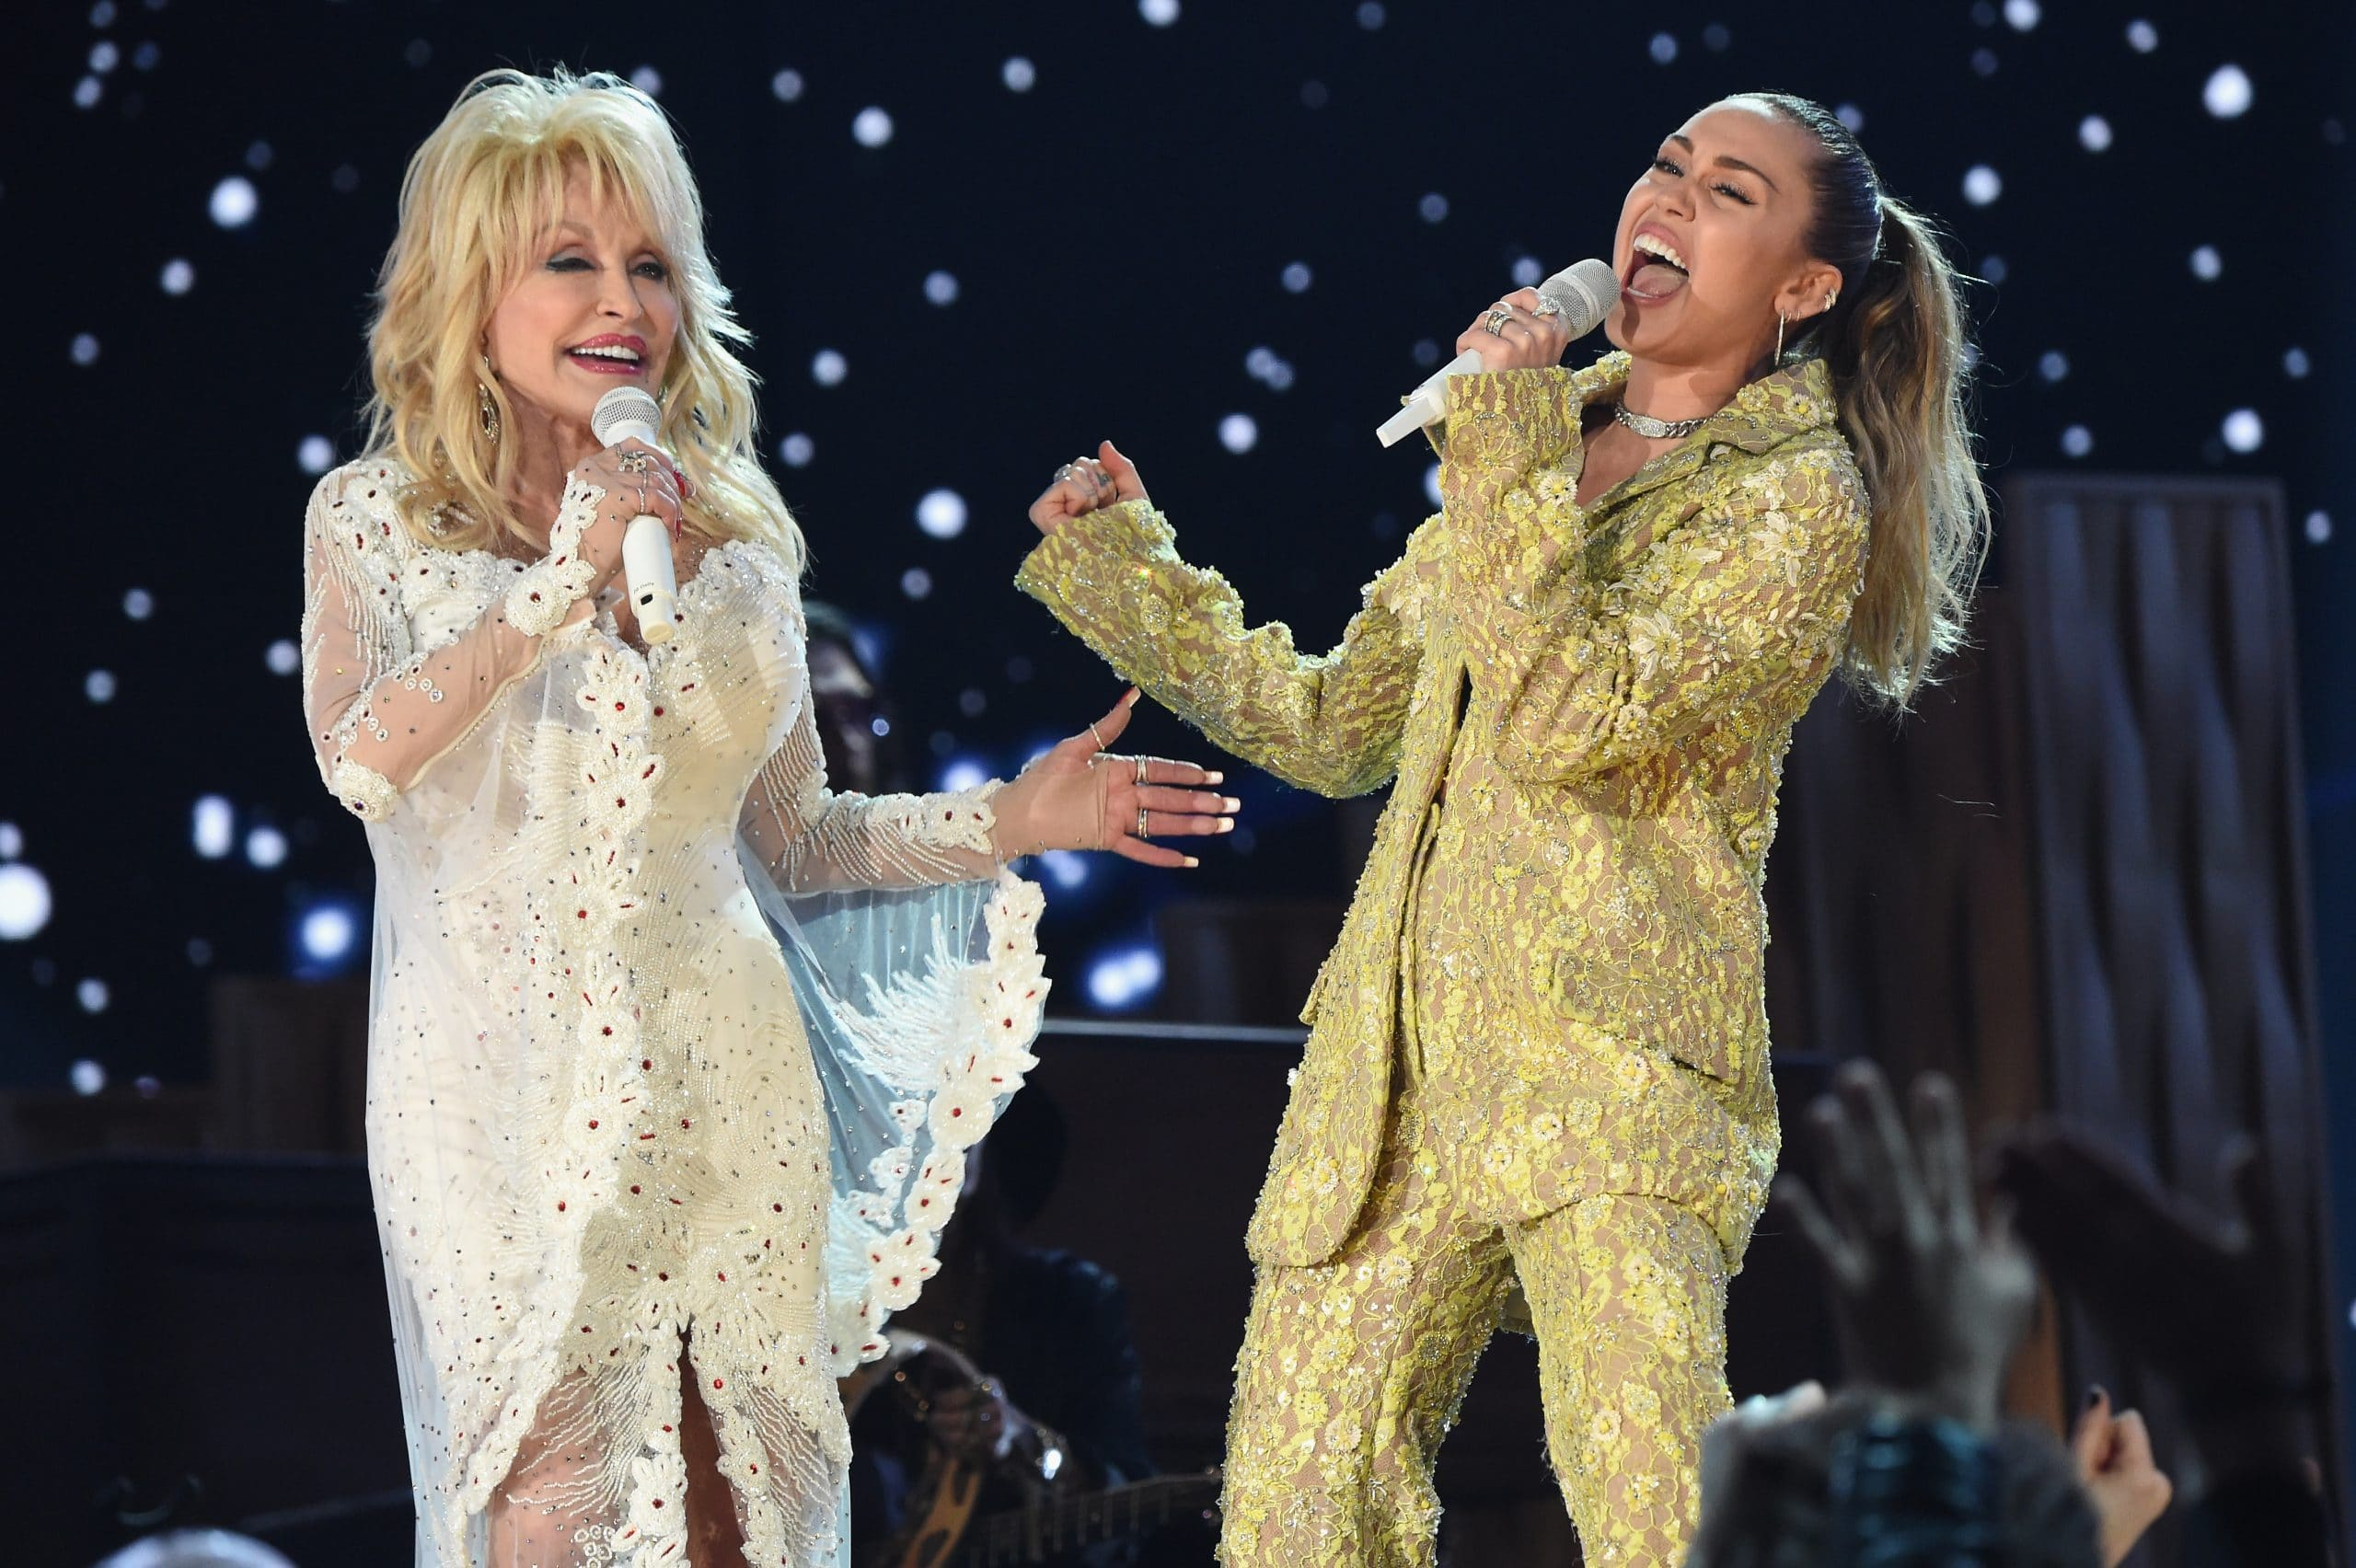 dolly parton performing with miley cyrus